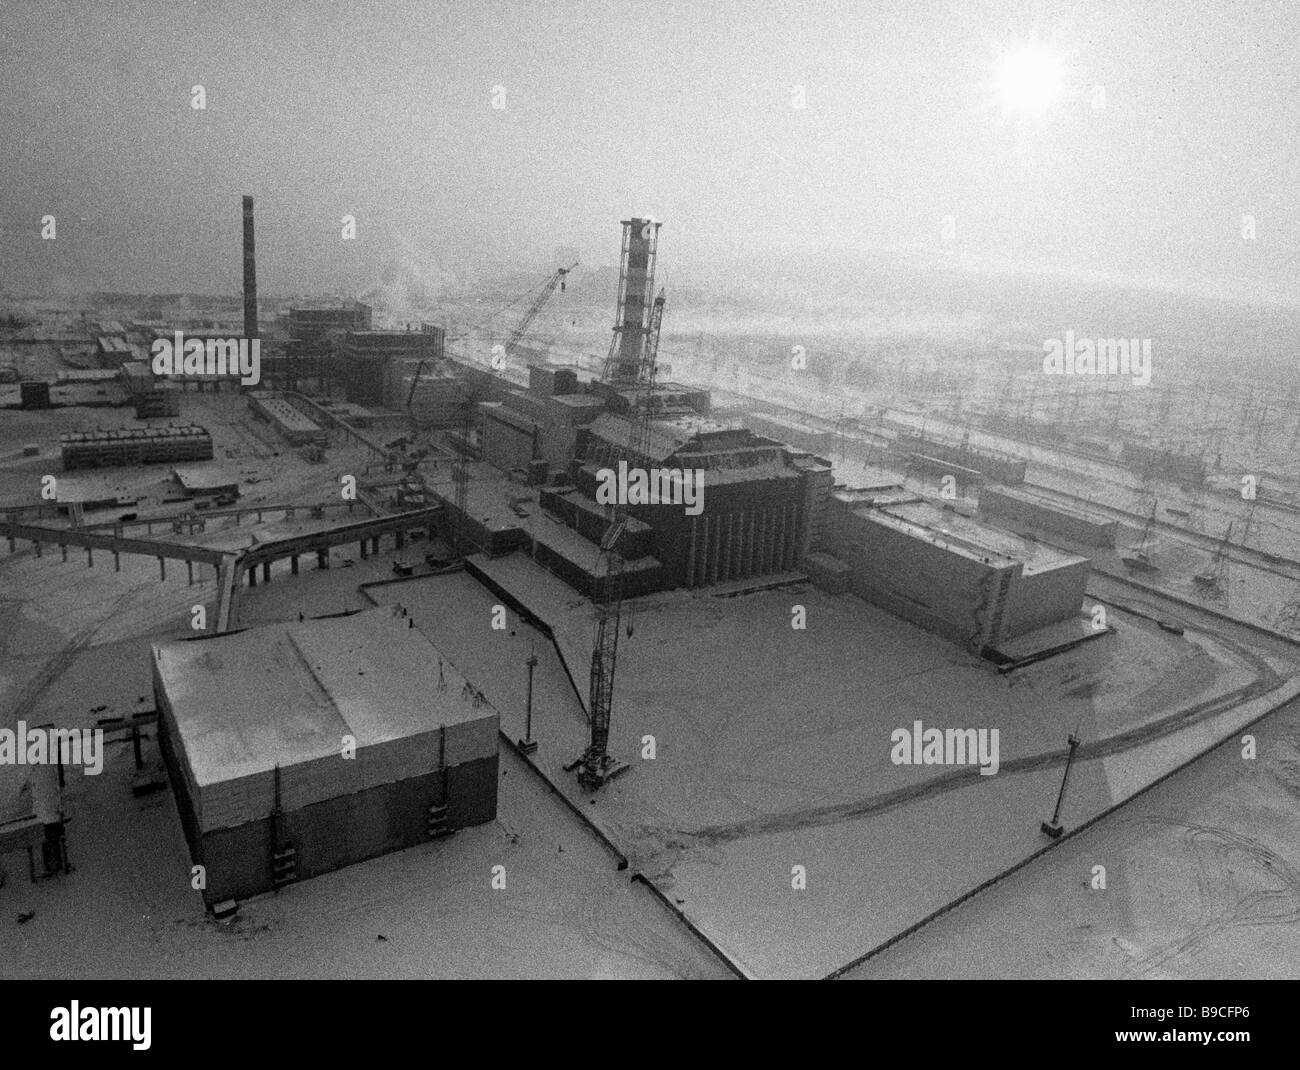 View pf Chernobyl nuclear power plant - Stock Image